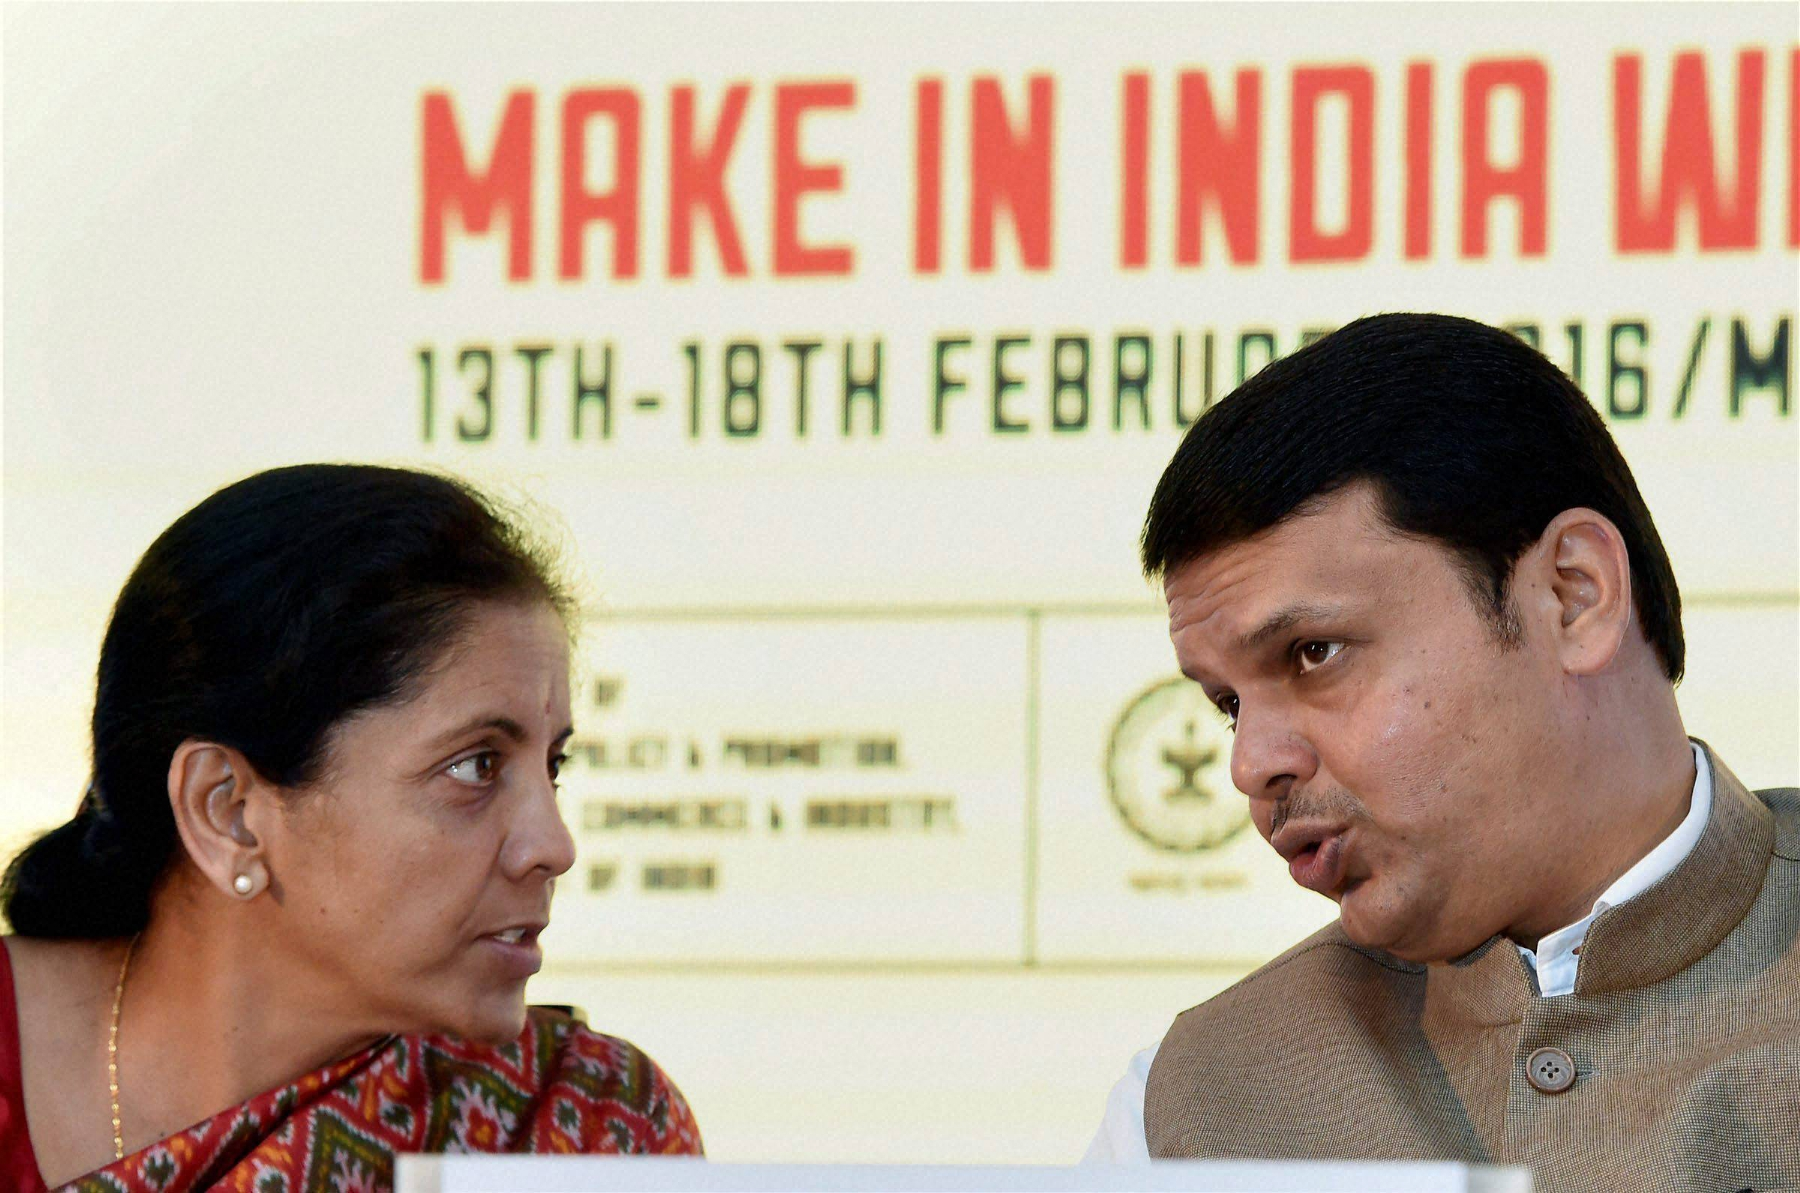 Mumbai gears up for maiden 'Make in India' week